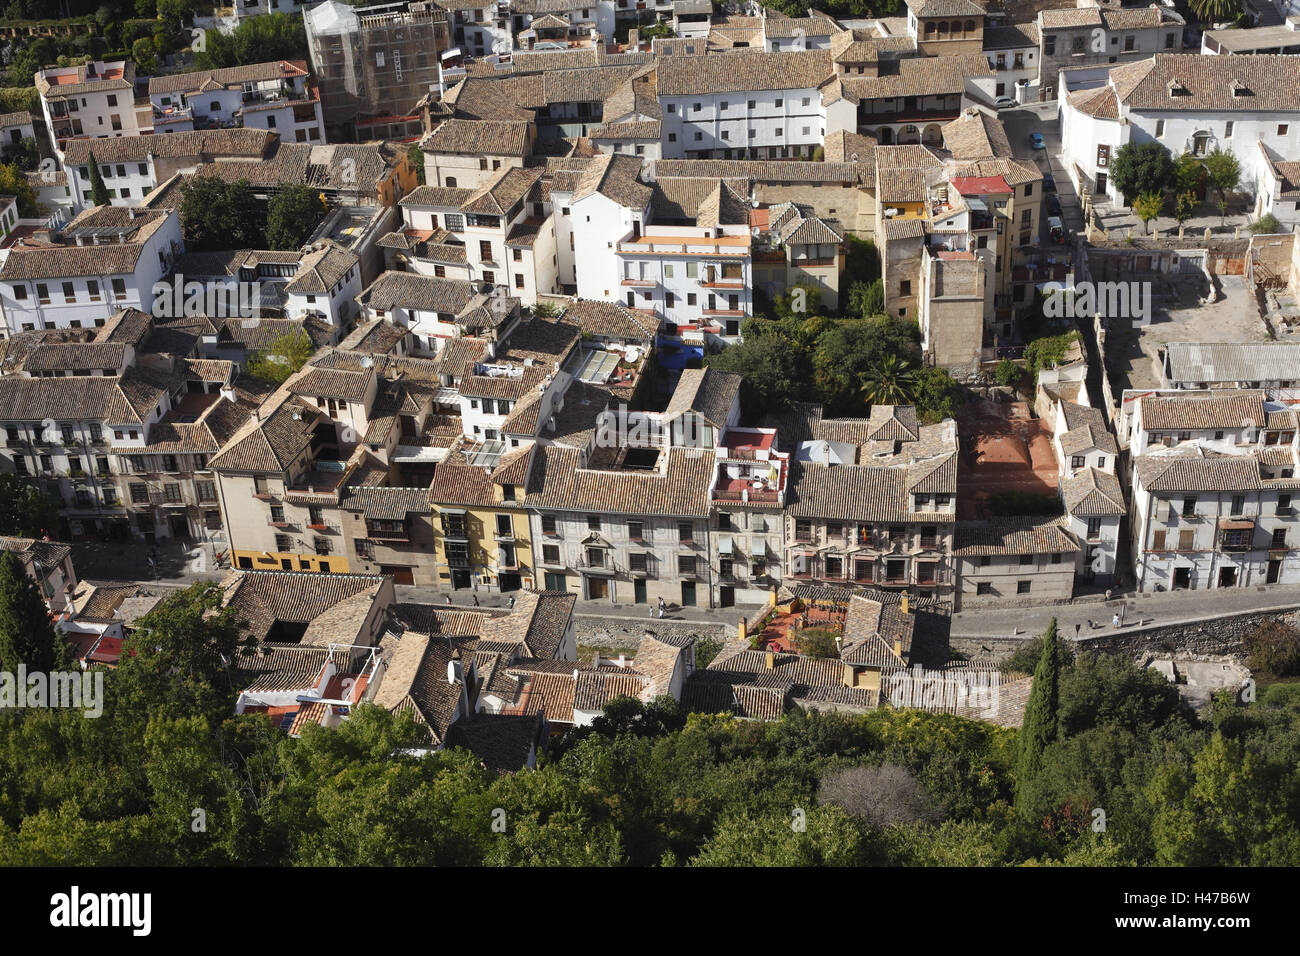 Spain, Andalusia, Granada, view Alhambra on the Old Town fourth